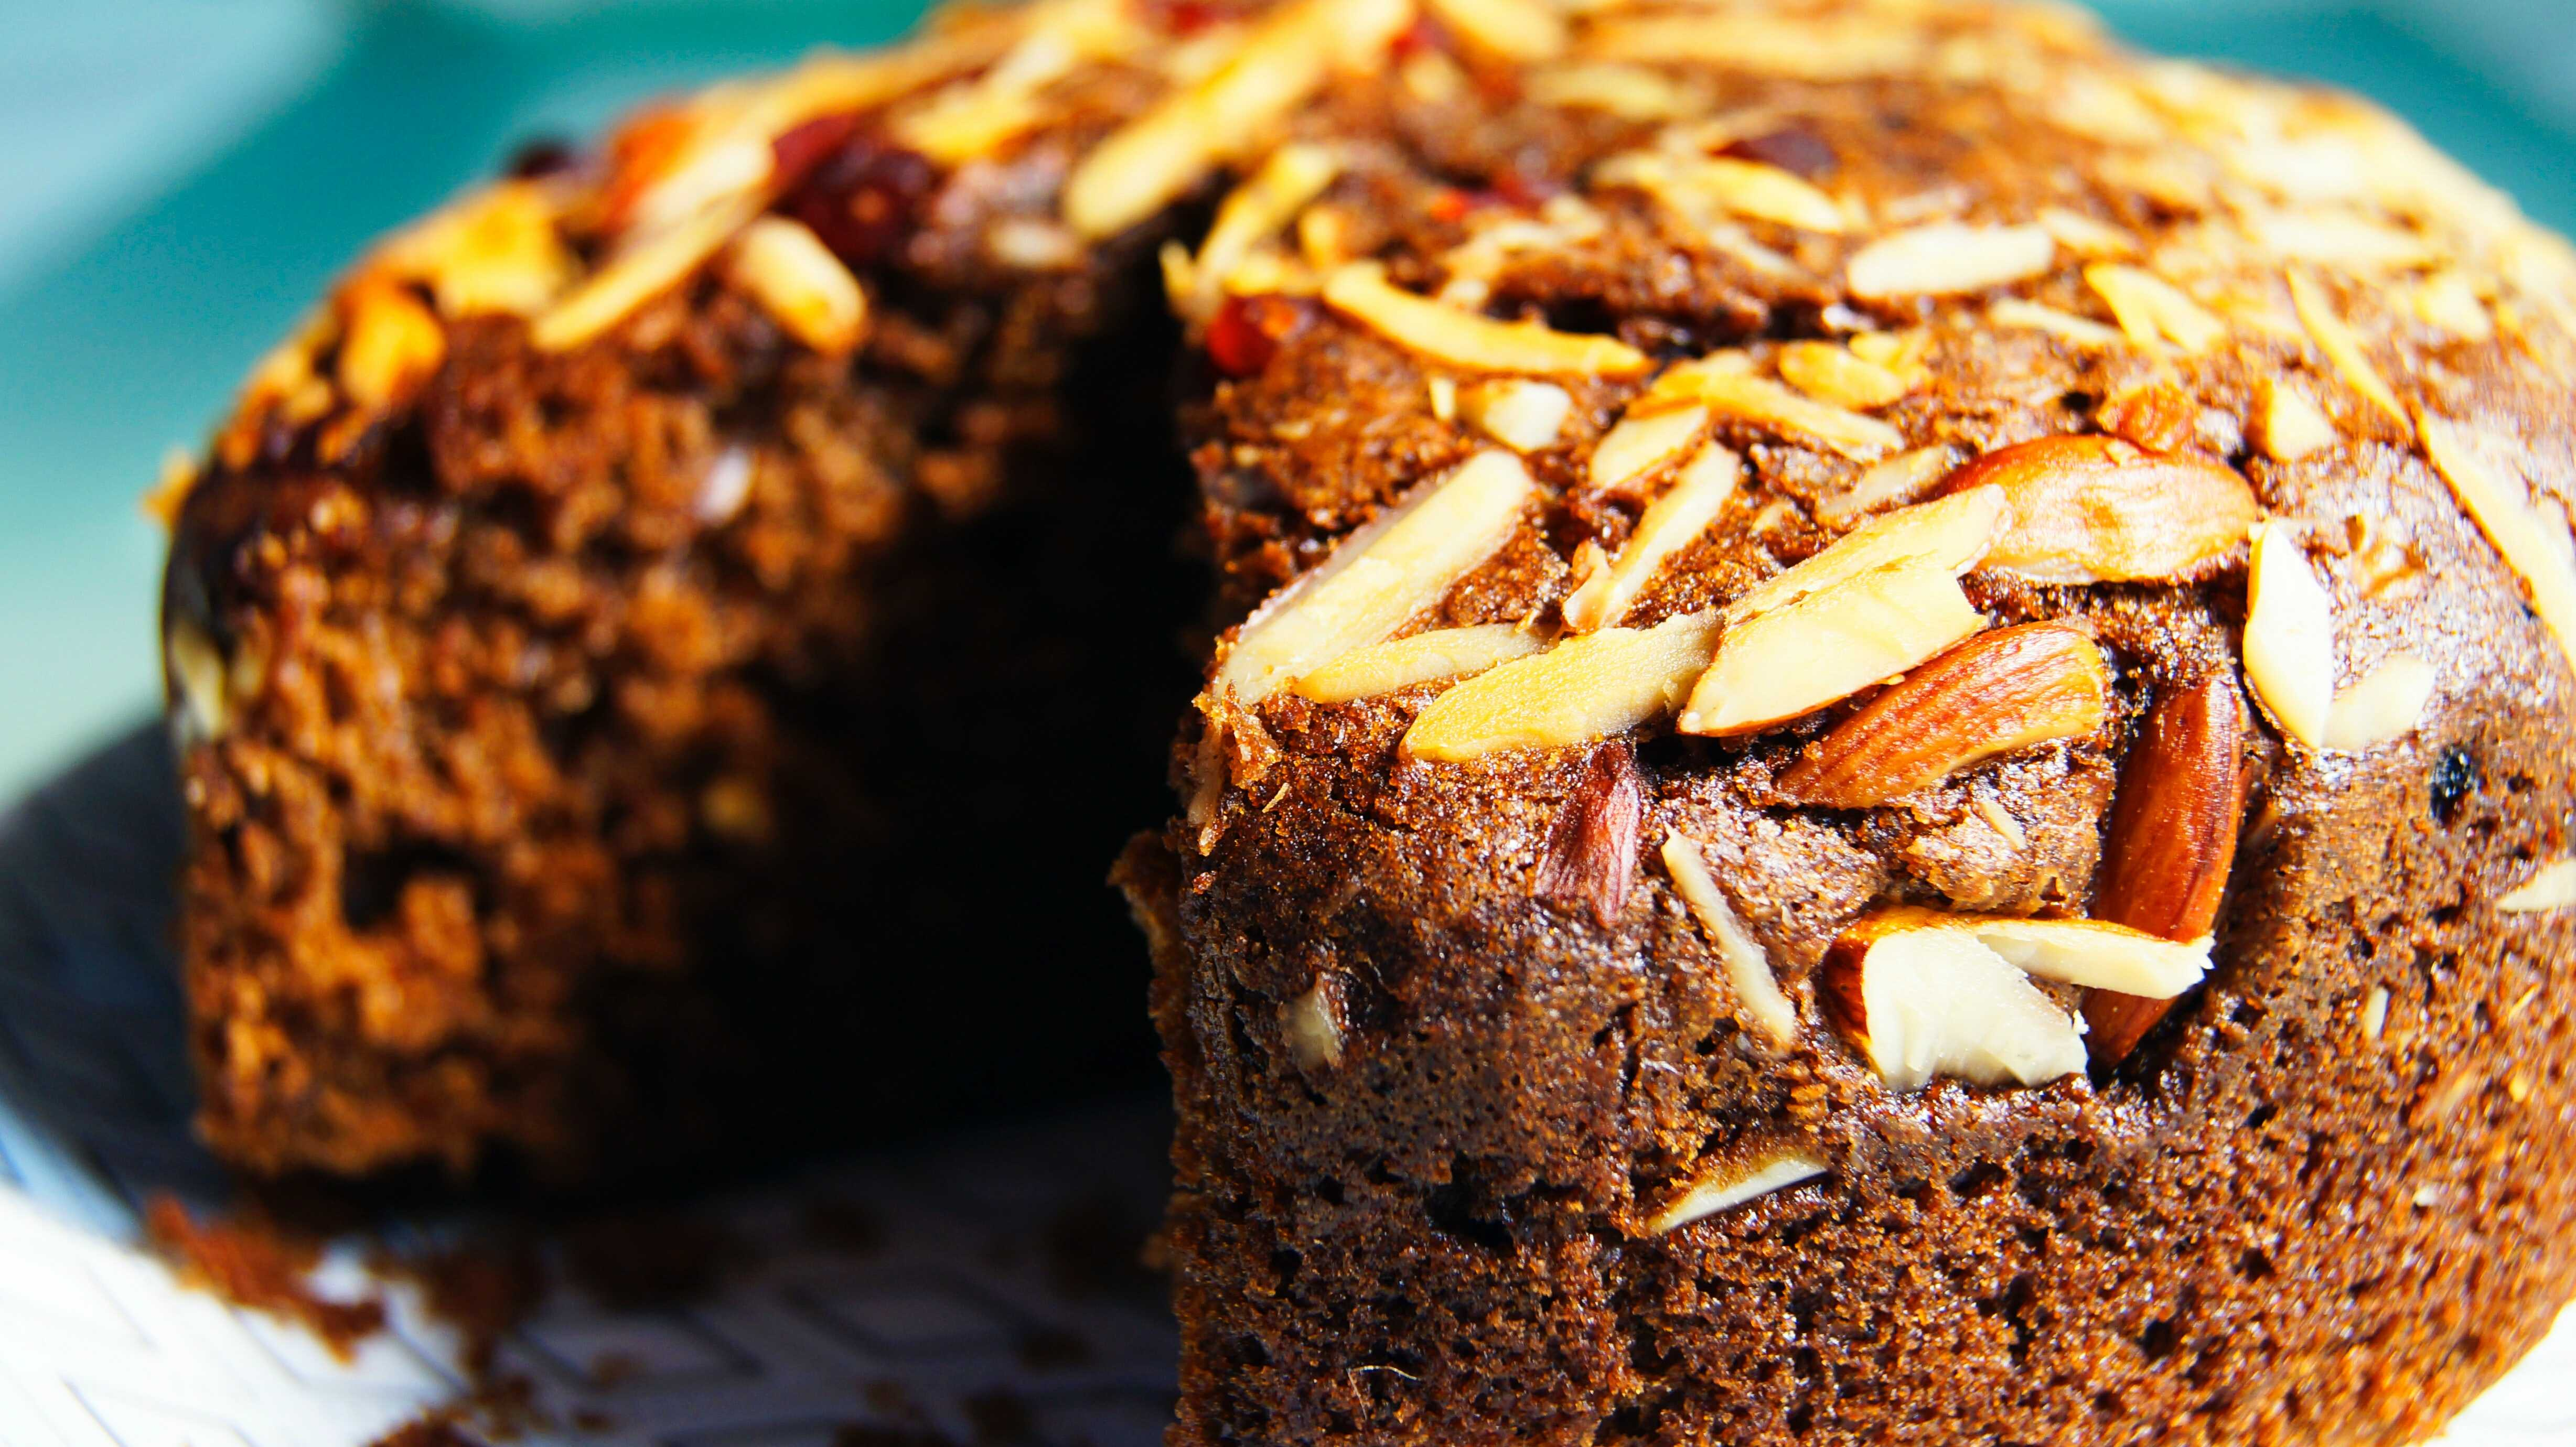 a chocolate cake with almonds